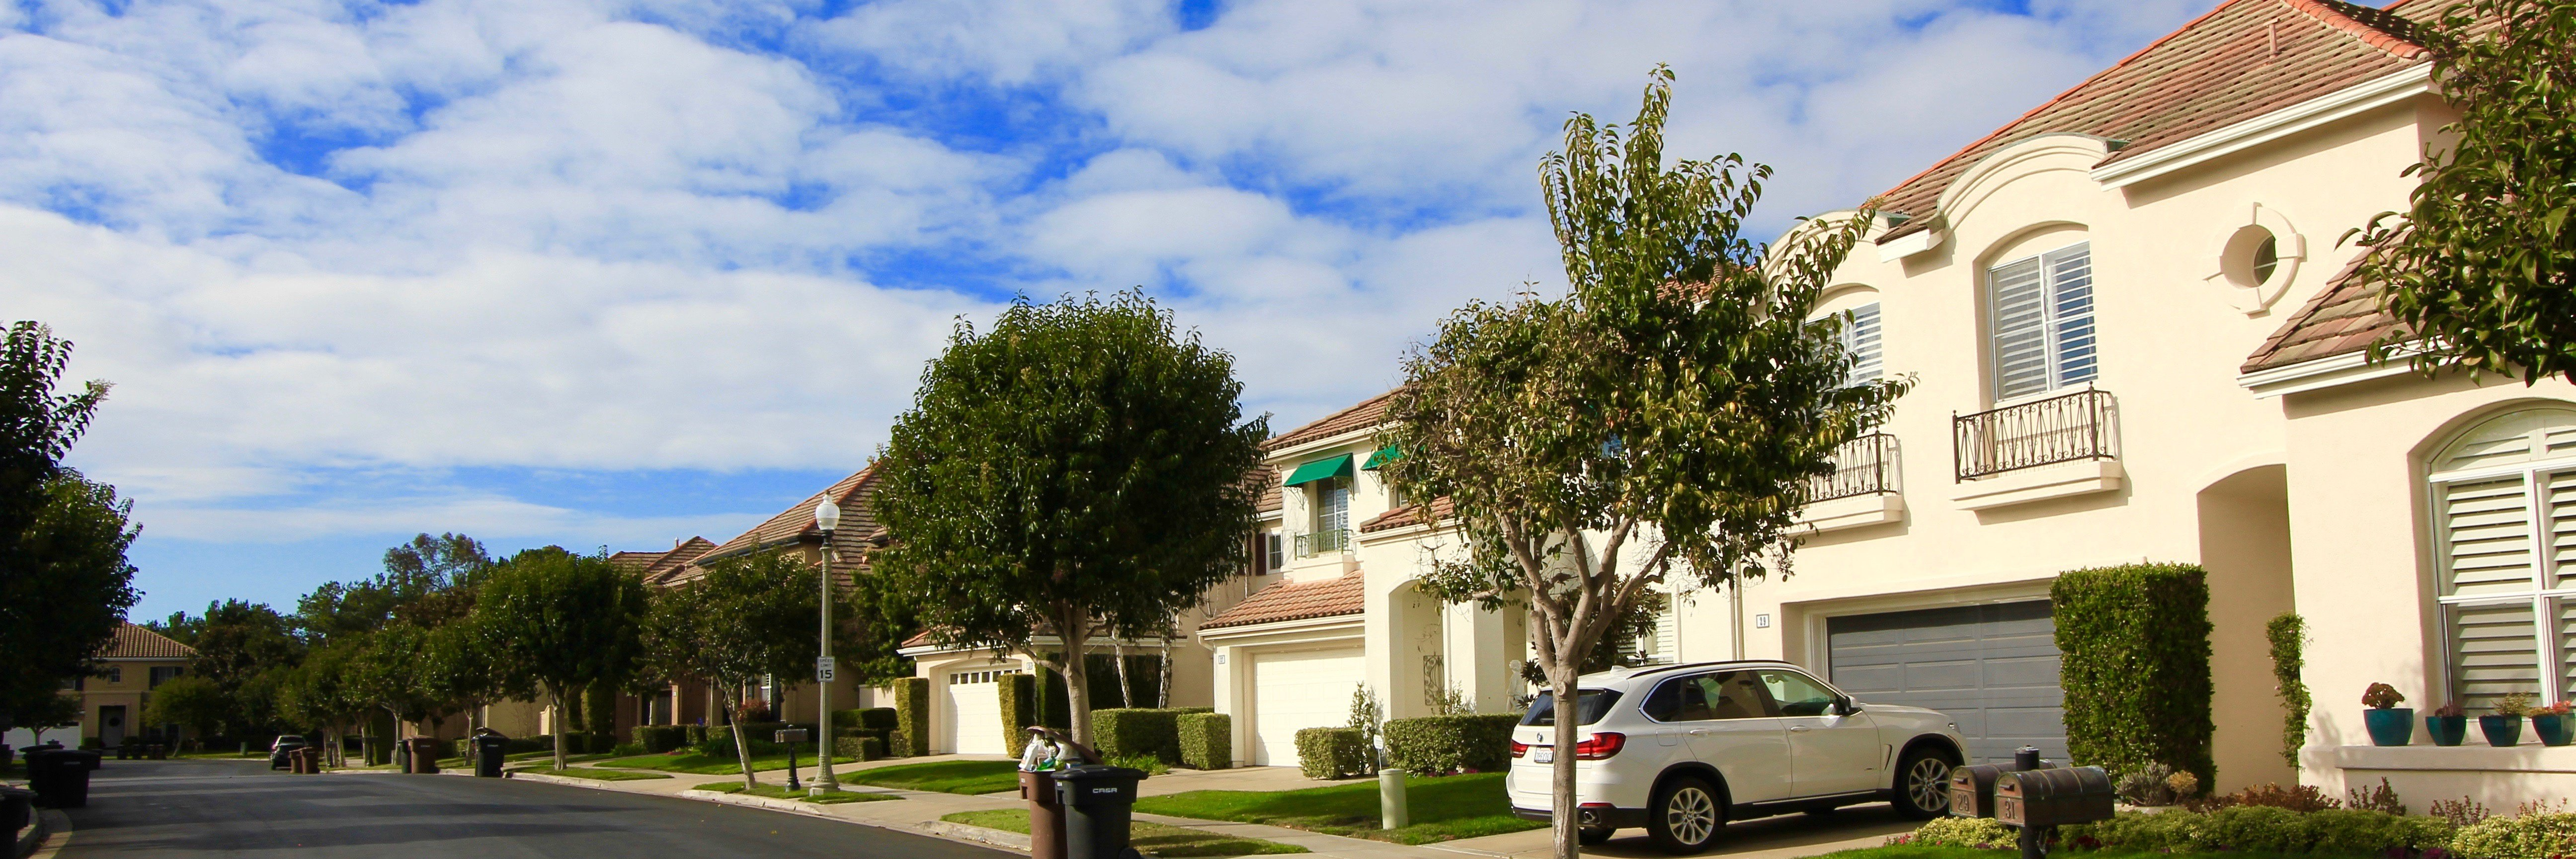 Saint Michel is a master planned home community in newport coast ca